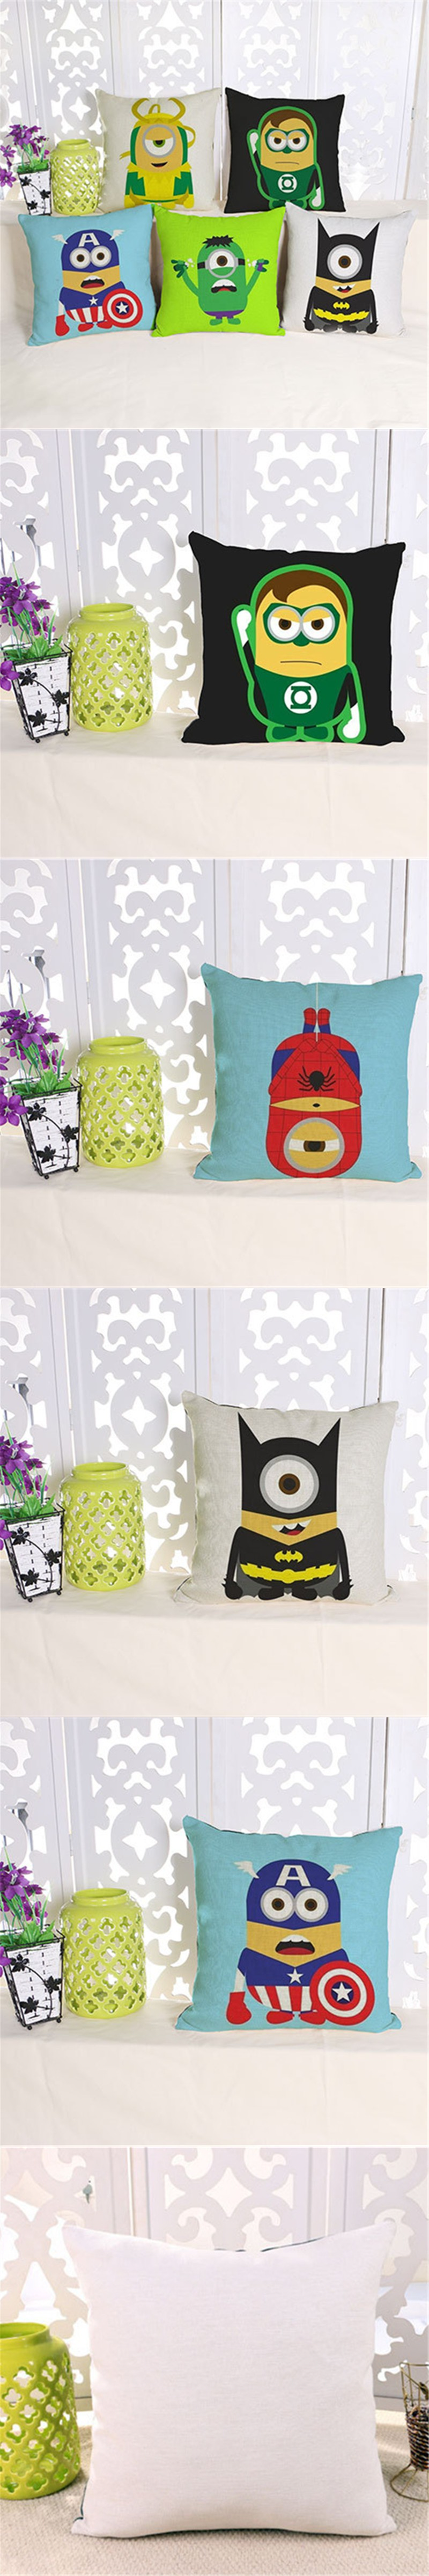 Creative Personality Is A Small Yellow People Cotton Pillow Pad Cushion Home Furnishing Modern Minimalist Office Decoration $8.99